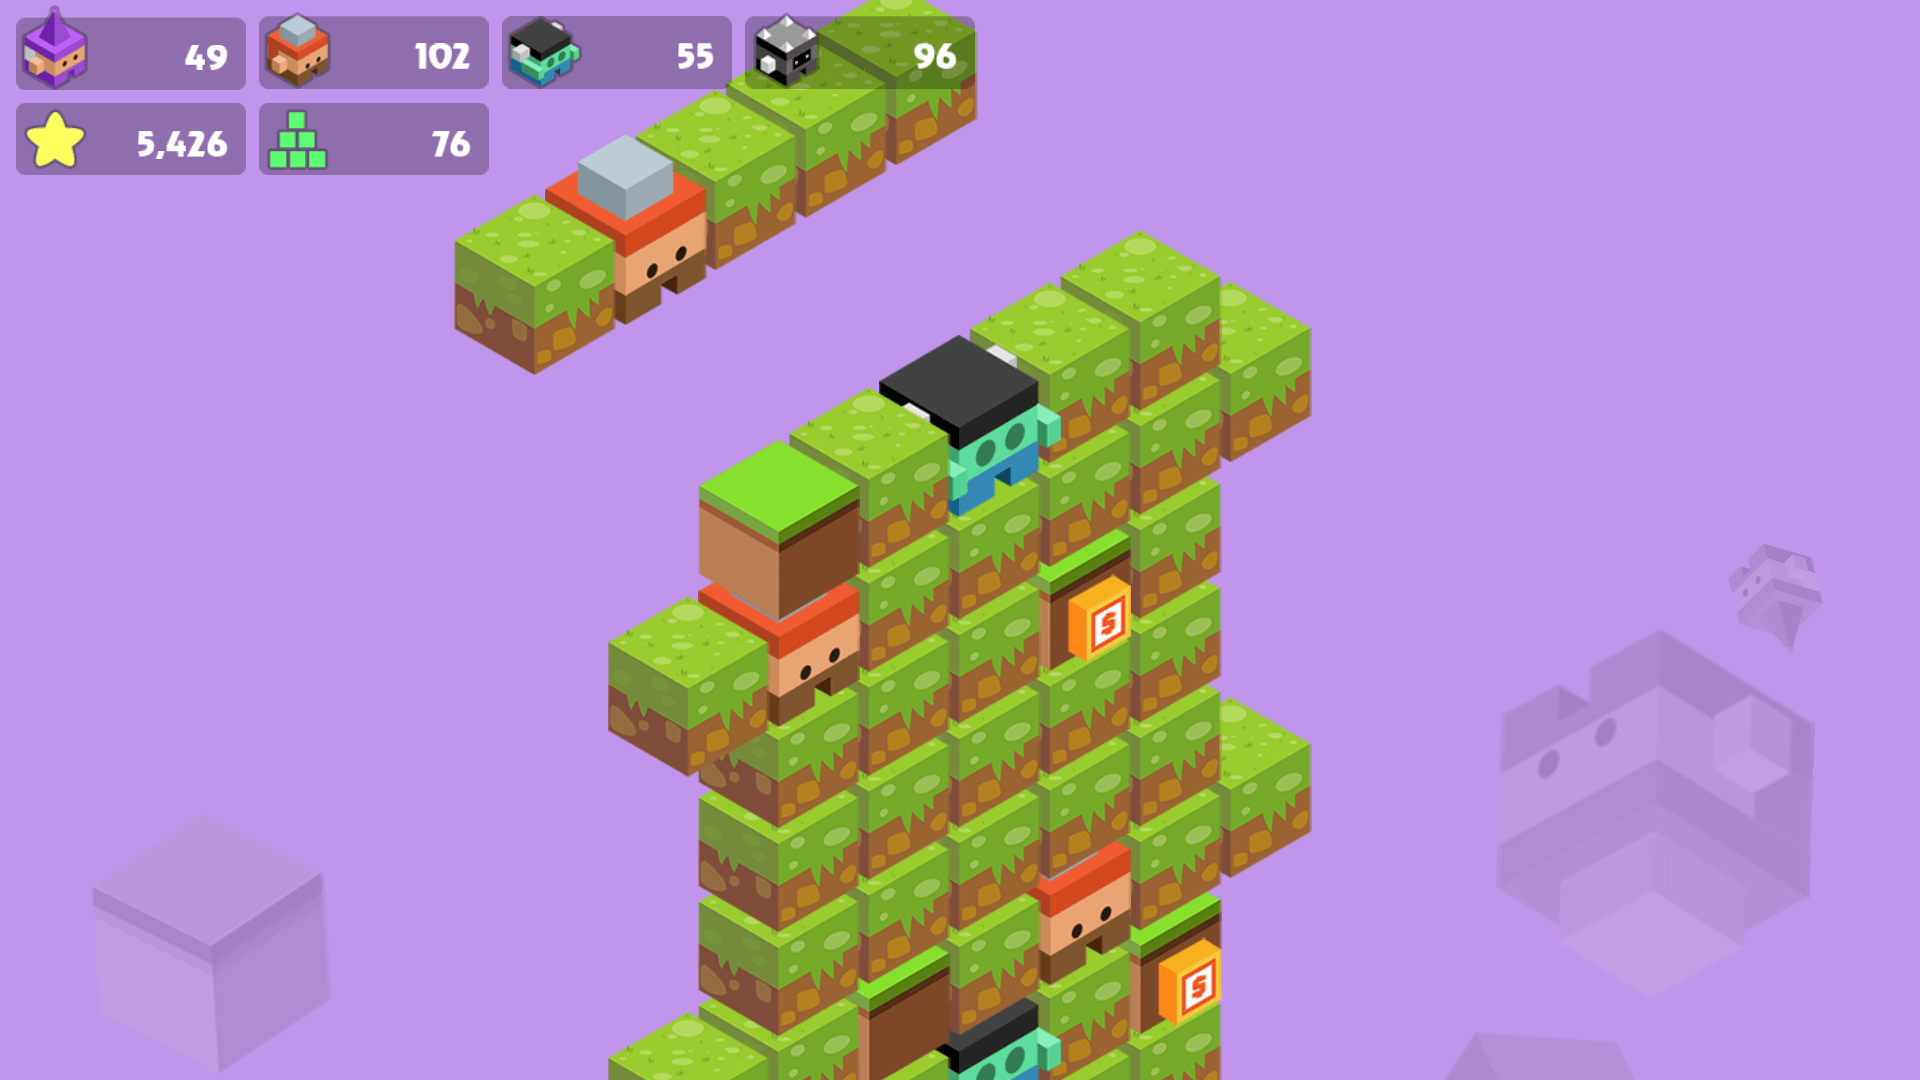 Build your own tower in Stacker style game.